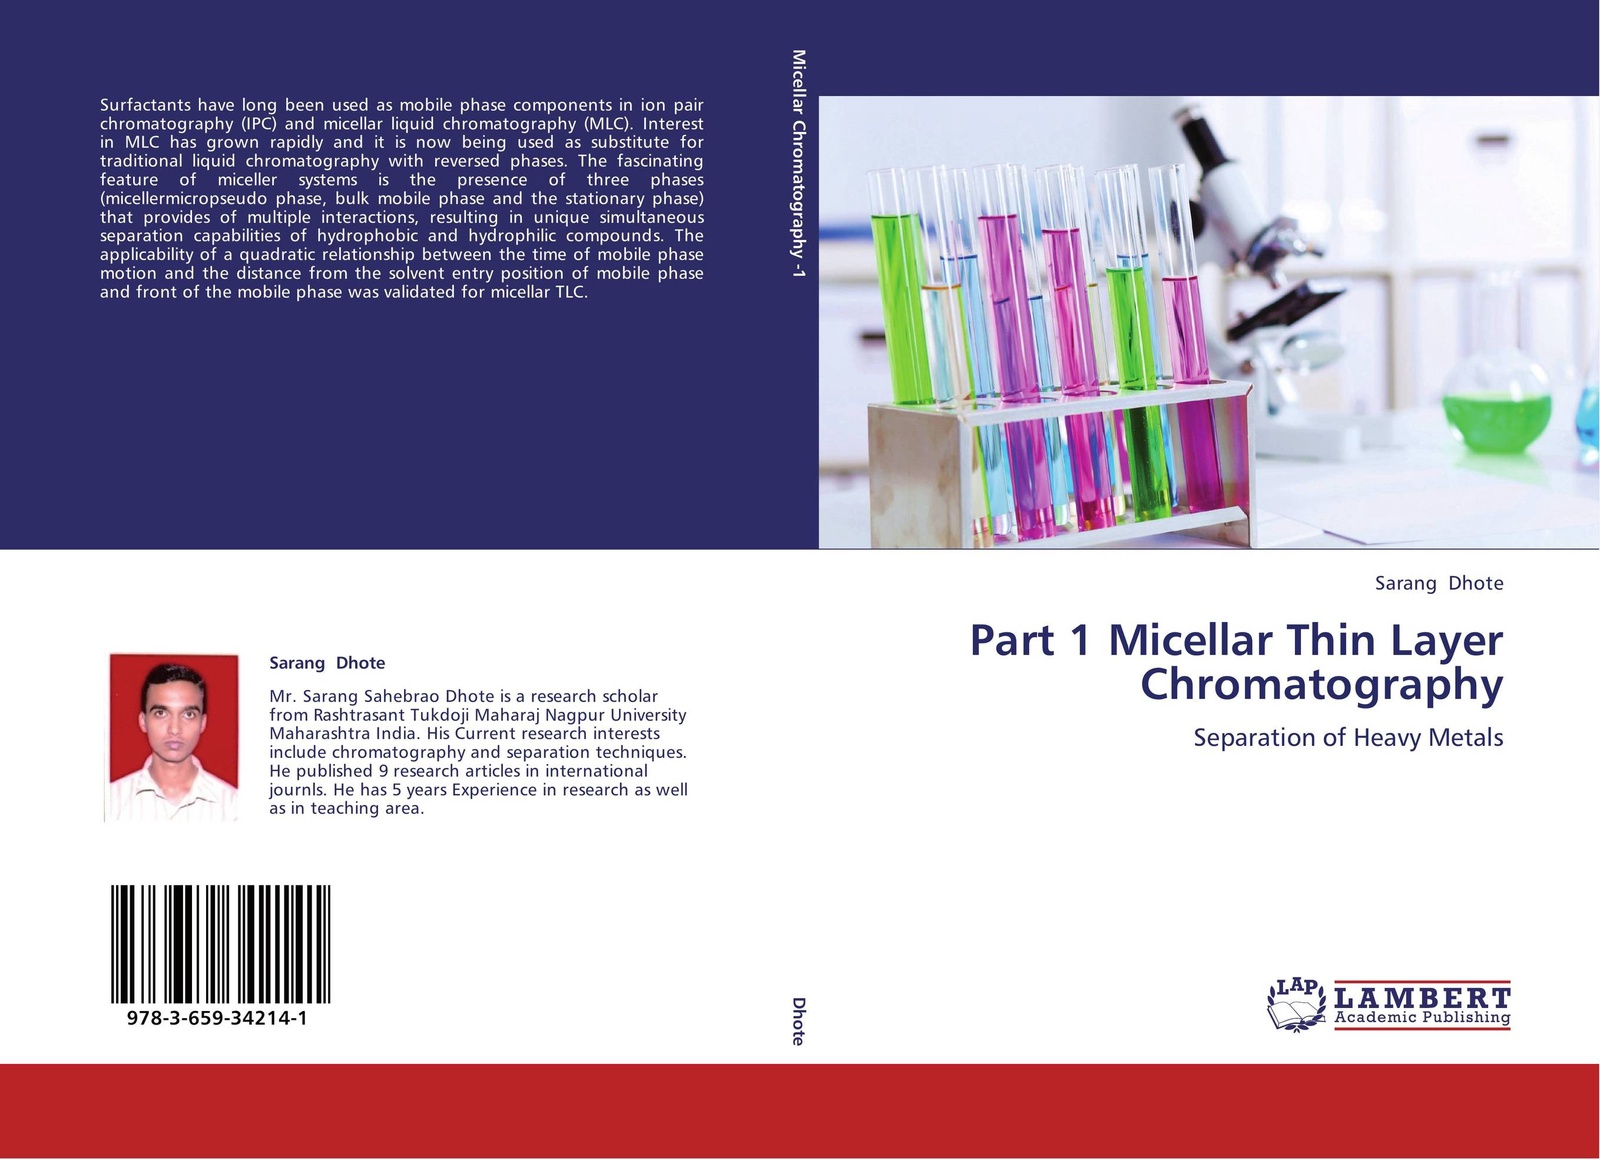 Sarang Dhote Part 1 Micellar Thin Layer Chromatography mark vitha f hydrophilic interaction chromatography a guide for practitioners